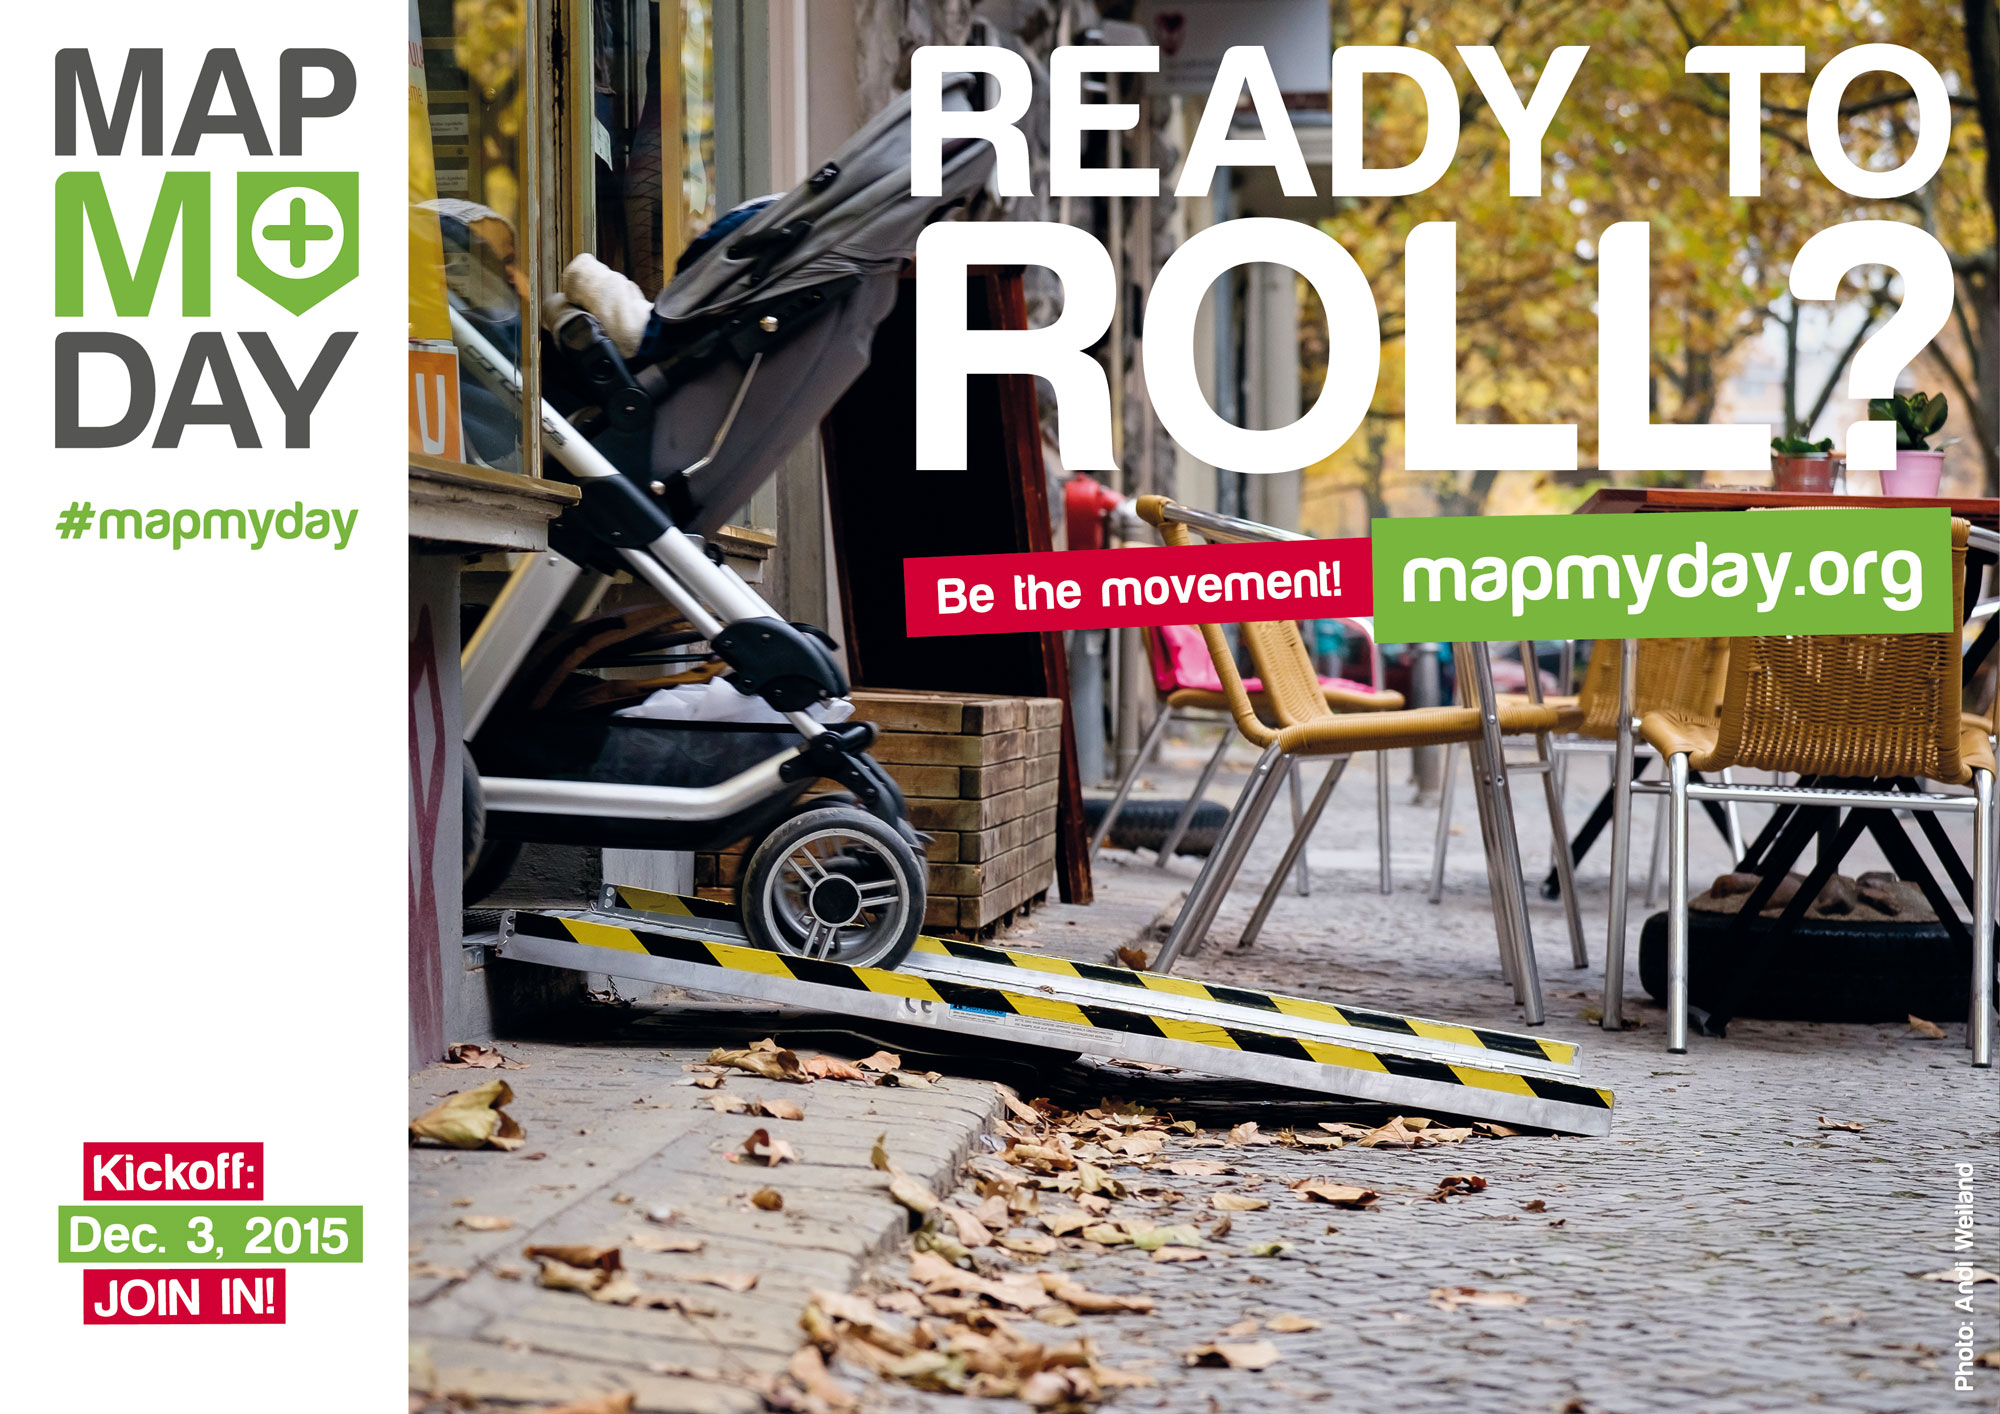 MapMyDay image of pushchair exiting building on temprorary ramp